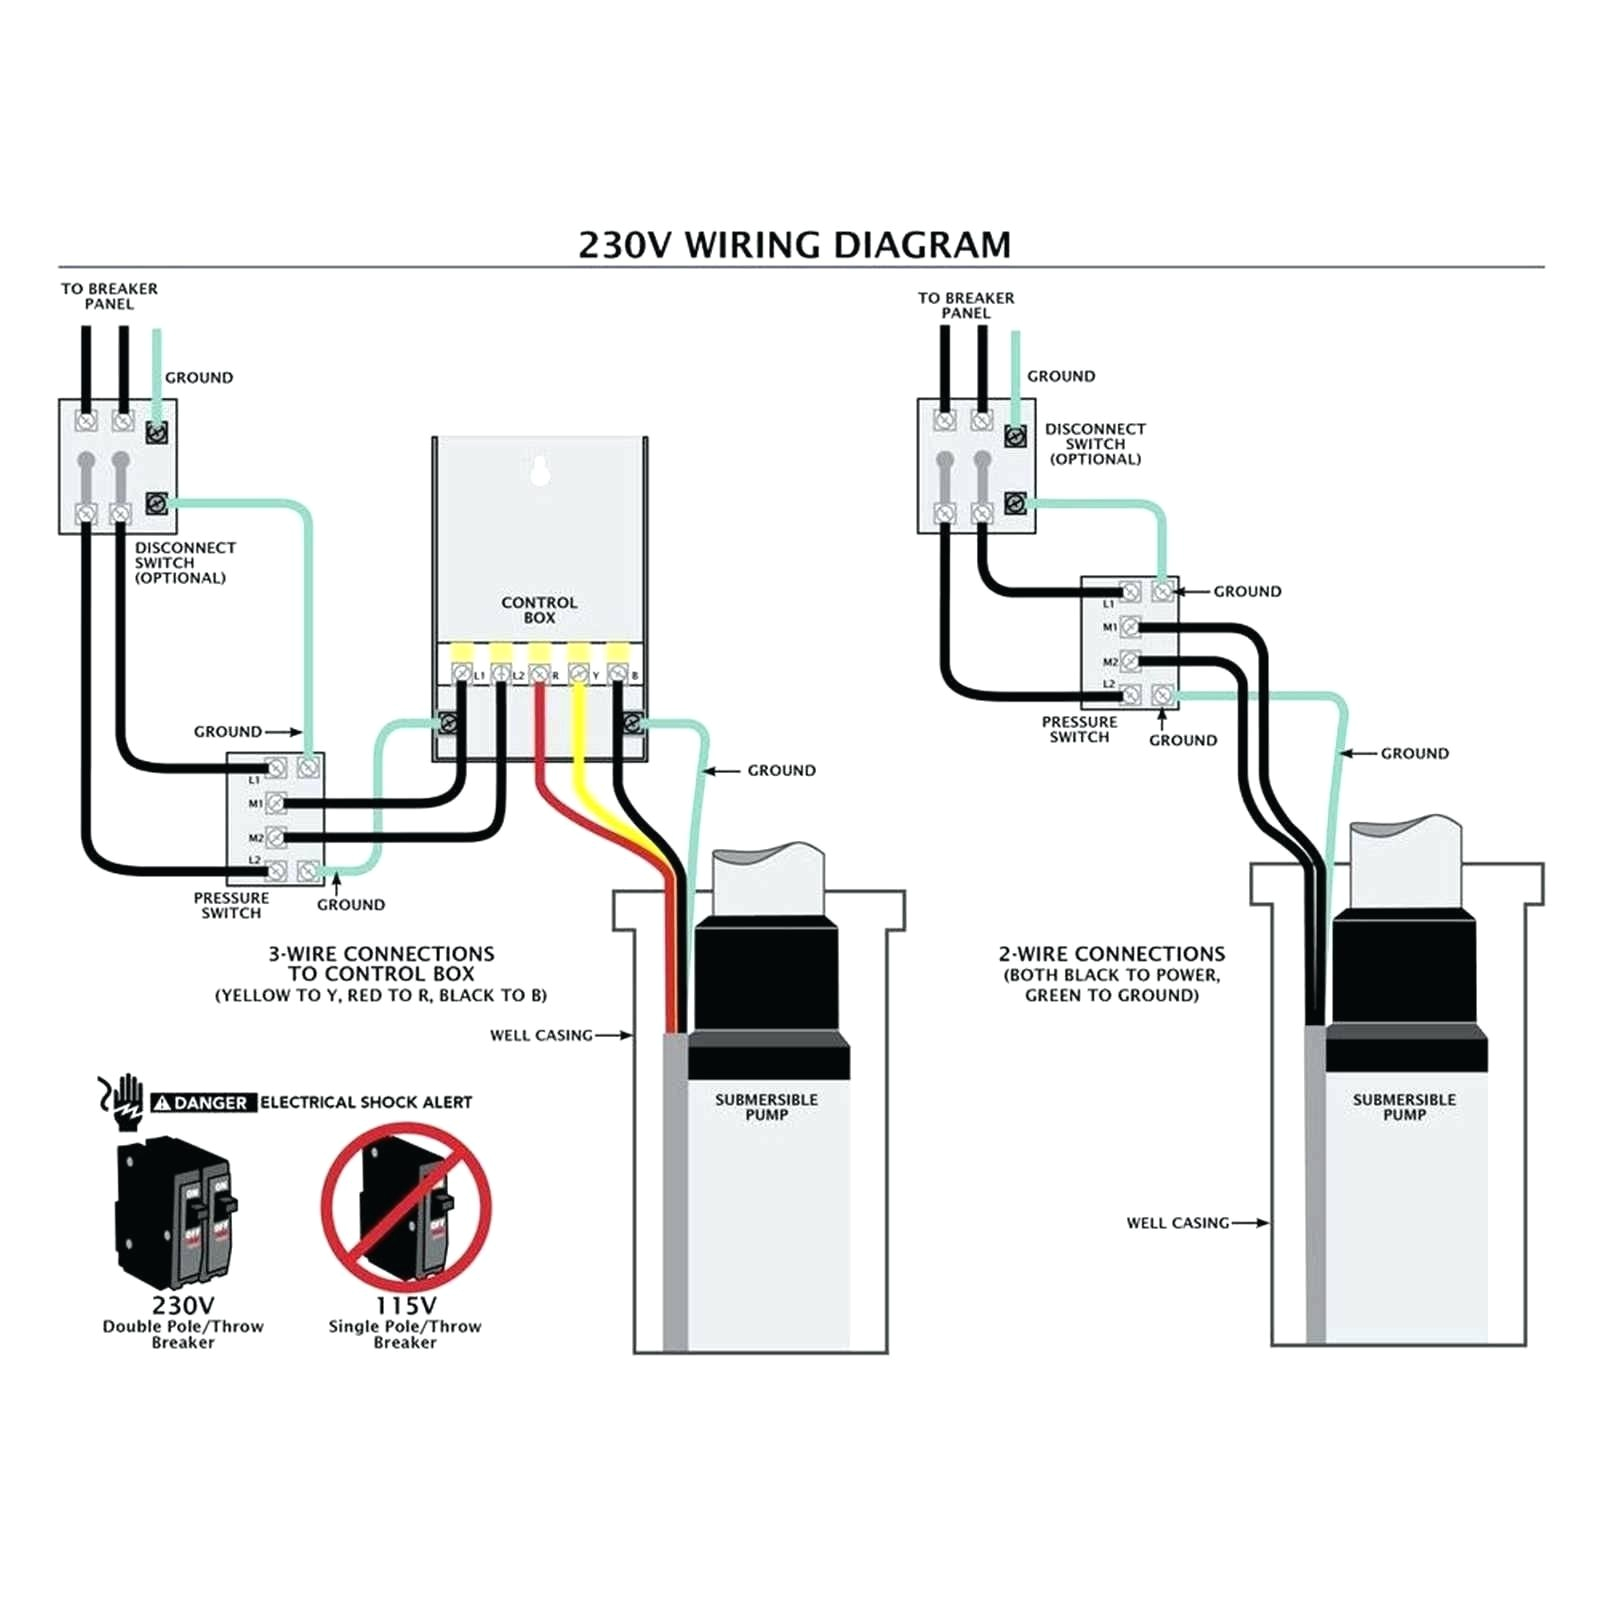 two wire well pump diagram wiring diagram db 2 wire submersible pump wiring diagram wiring diagram